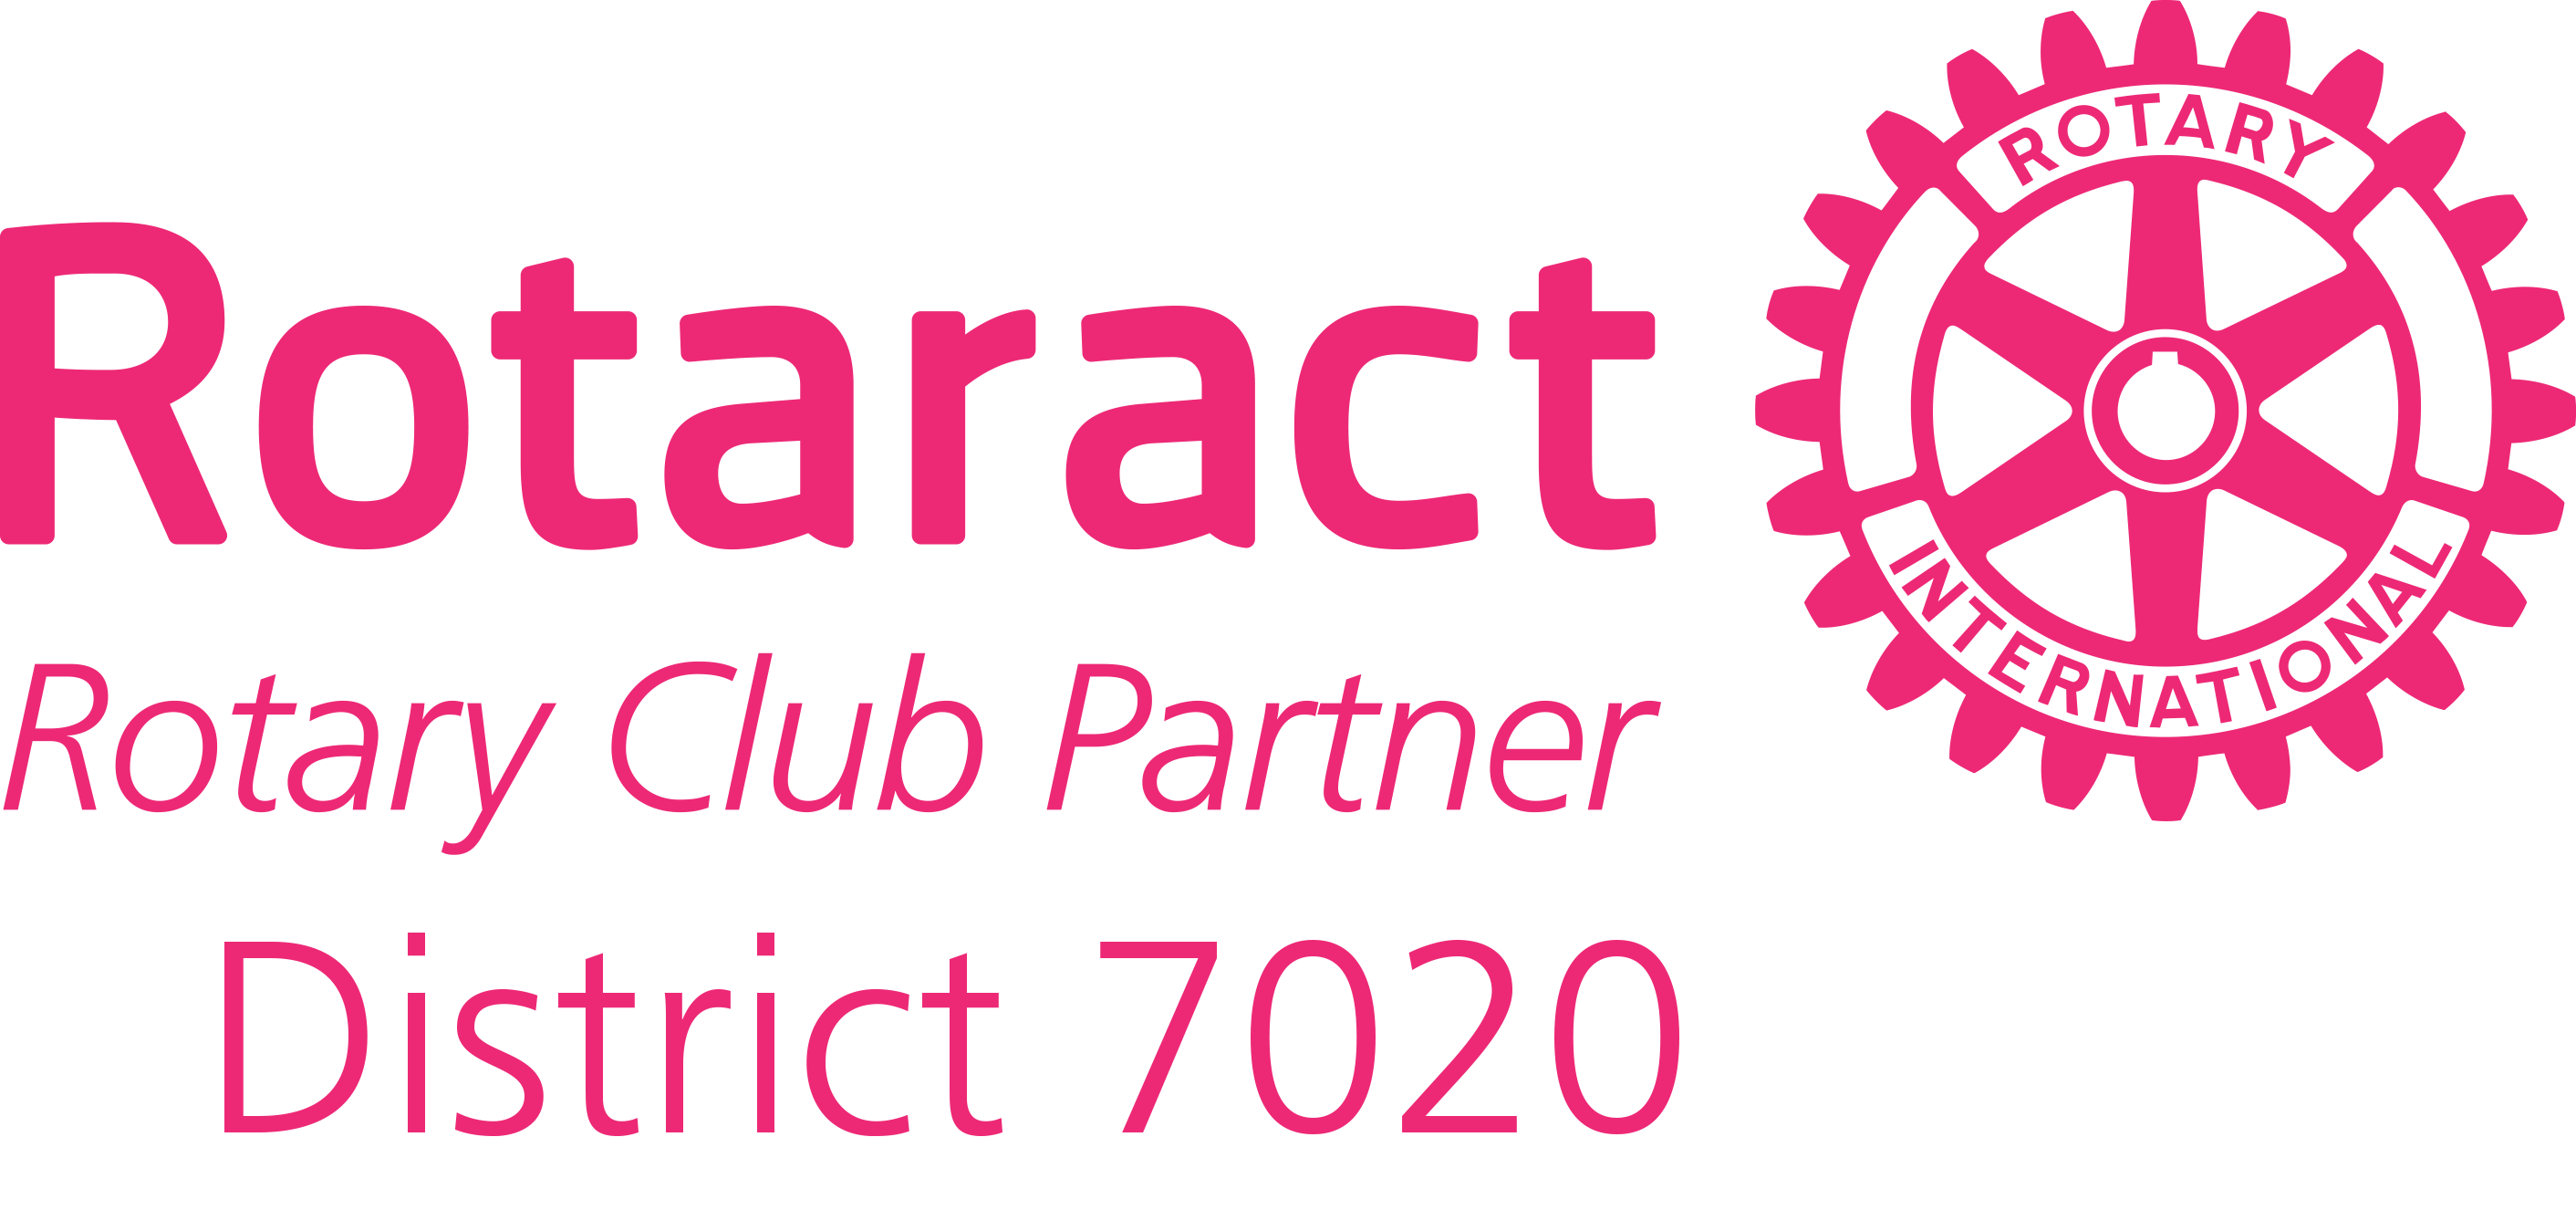 Rotaract District 7020